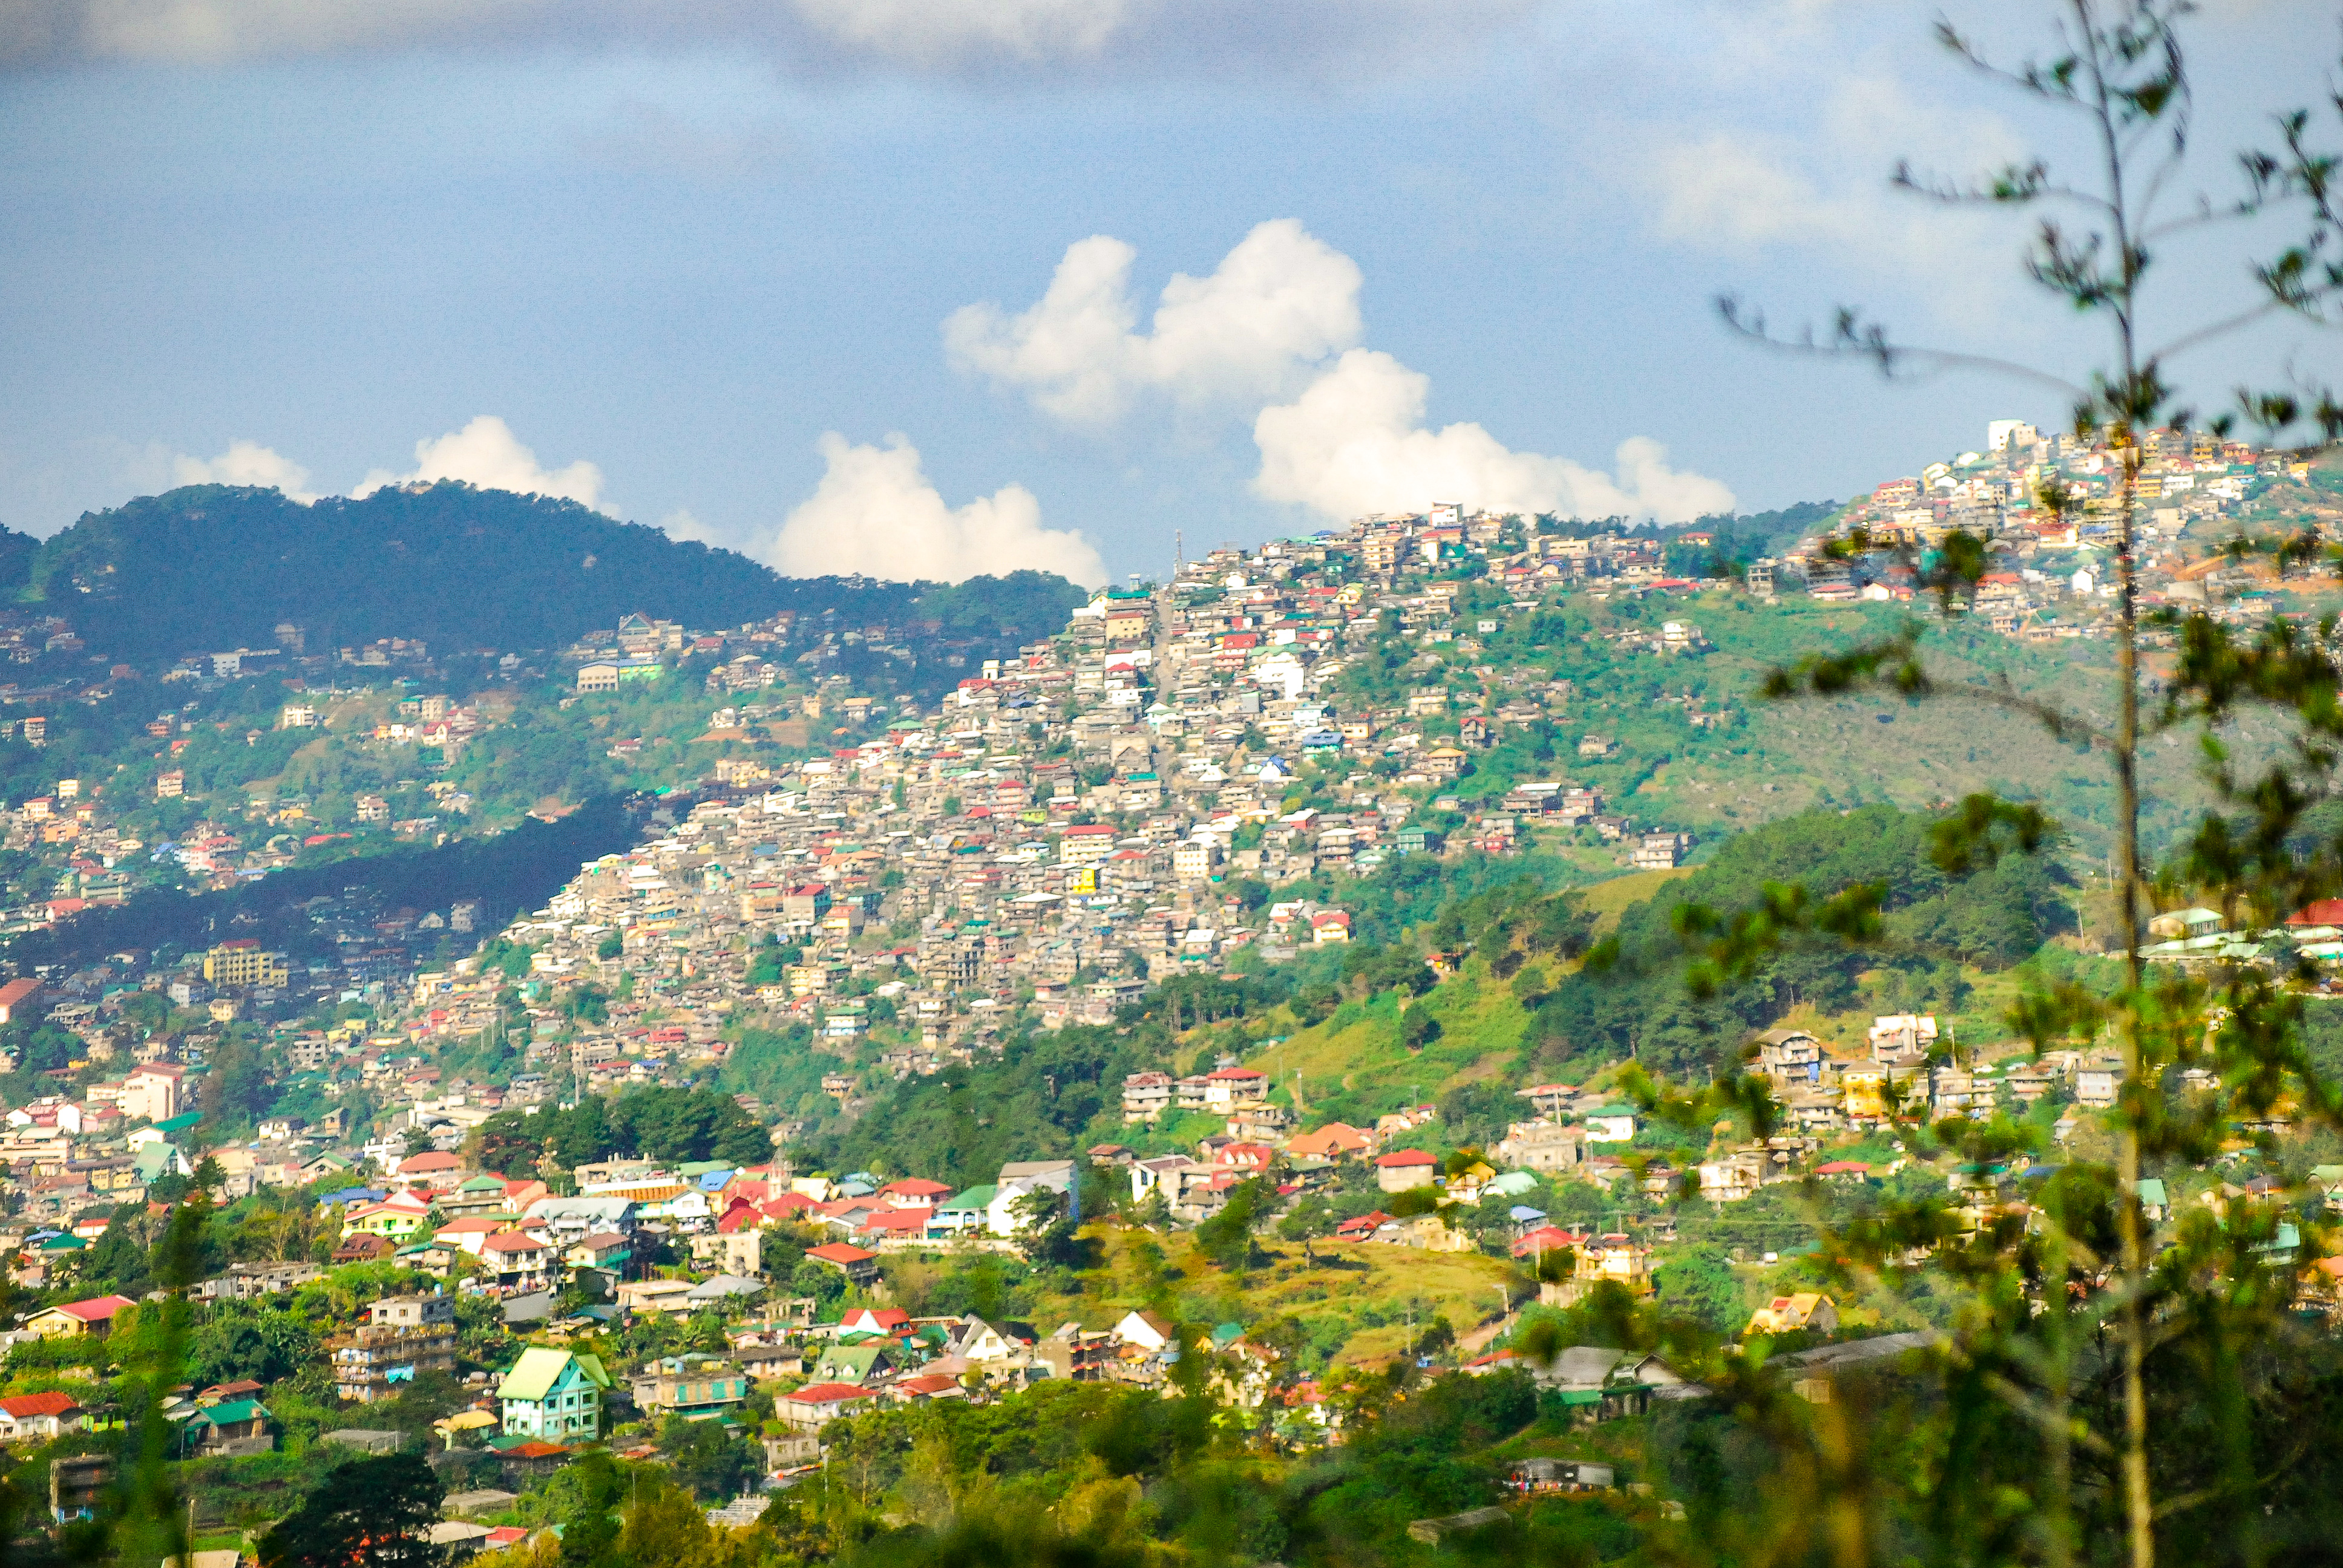 Stunning view of Baguio City from Mines View Park